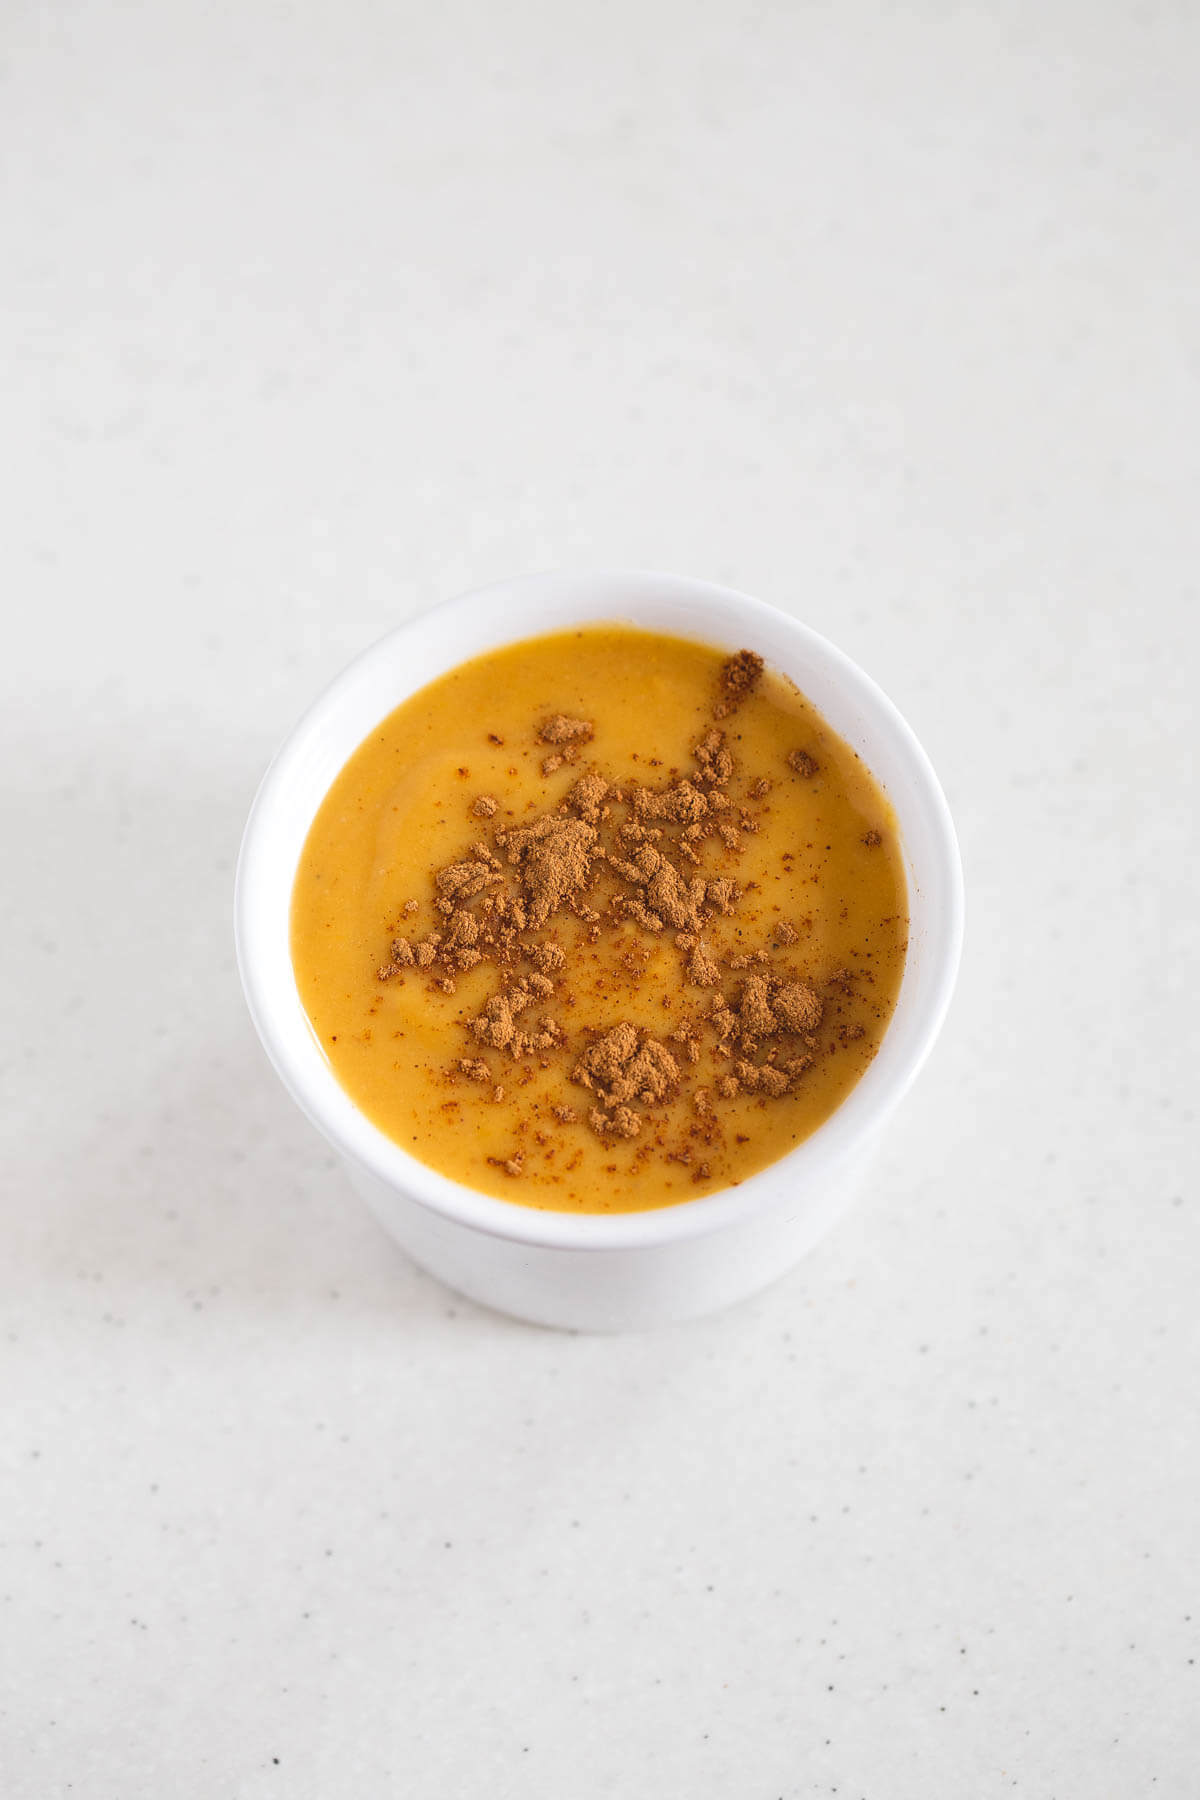 Vegan Pumpkin Custard: Vegan custard is very easy to make. You have to replace the eggs with cornstarch and the milk with non-dairy milk. This version has pumpkin.